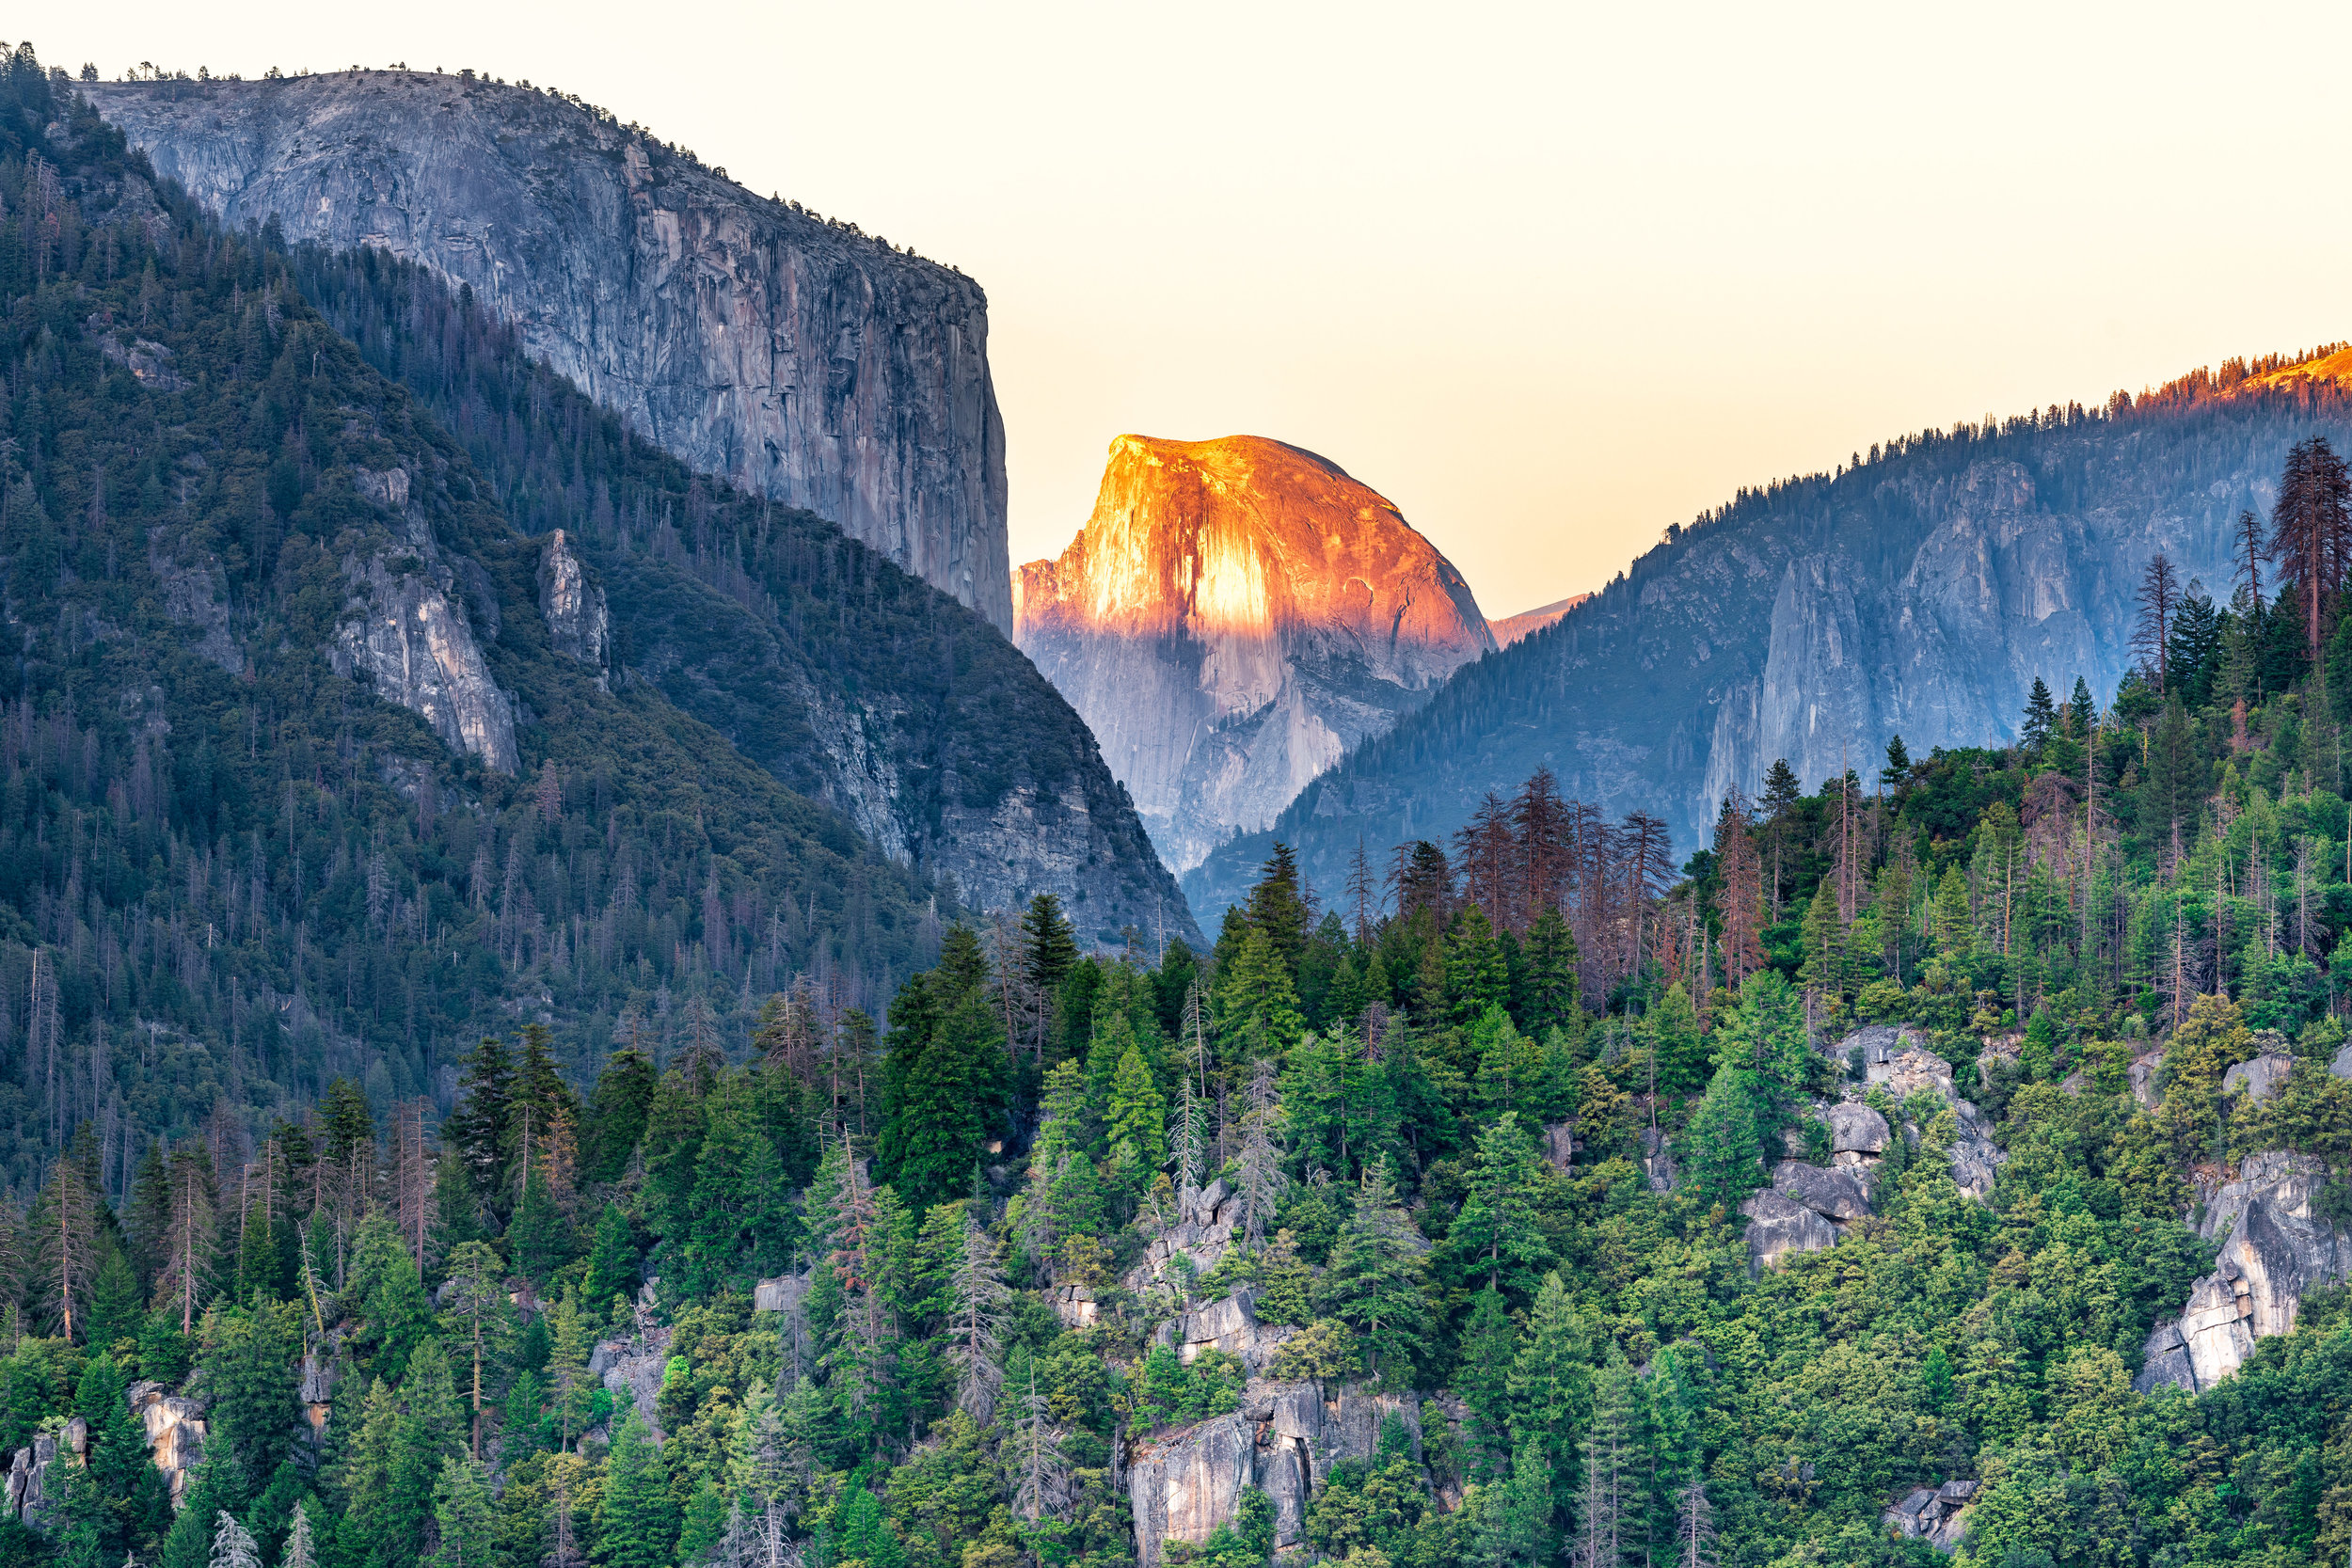 """Sunset light on Half Dome (1/13 sec at f/8.0, iso64, 70-200mm len @160mm) GPS Coordinate: 37°42'49.2""""N 119°43'38.5""""W"""